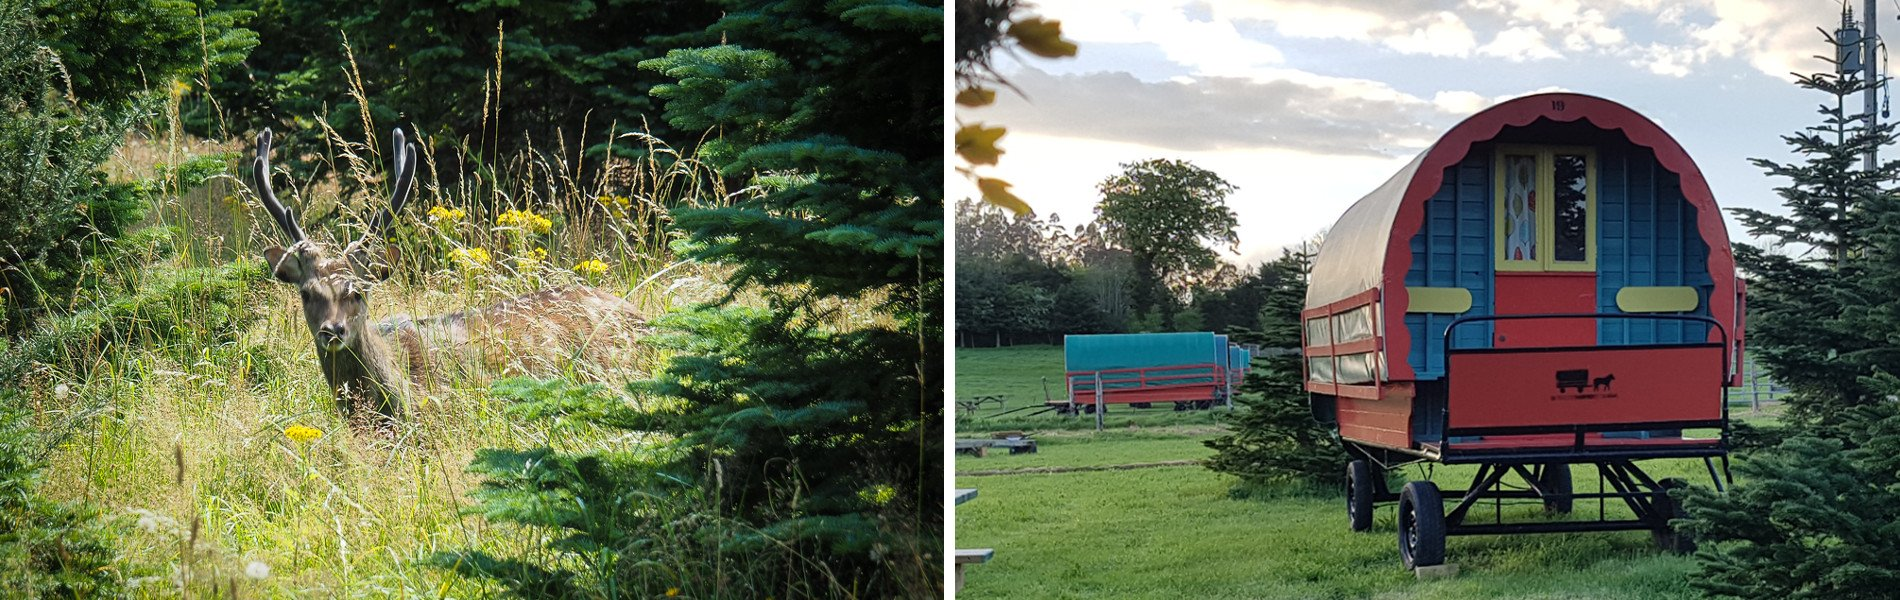 Wildlife and glamping in Wicklow Ireland